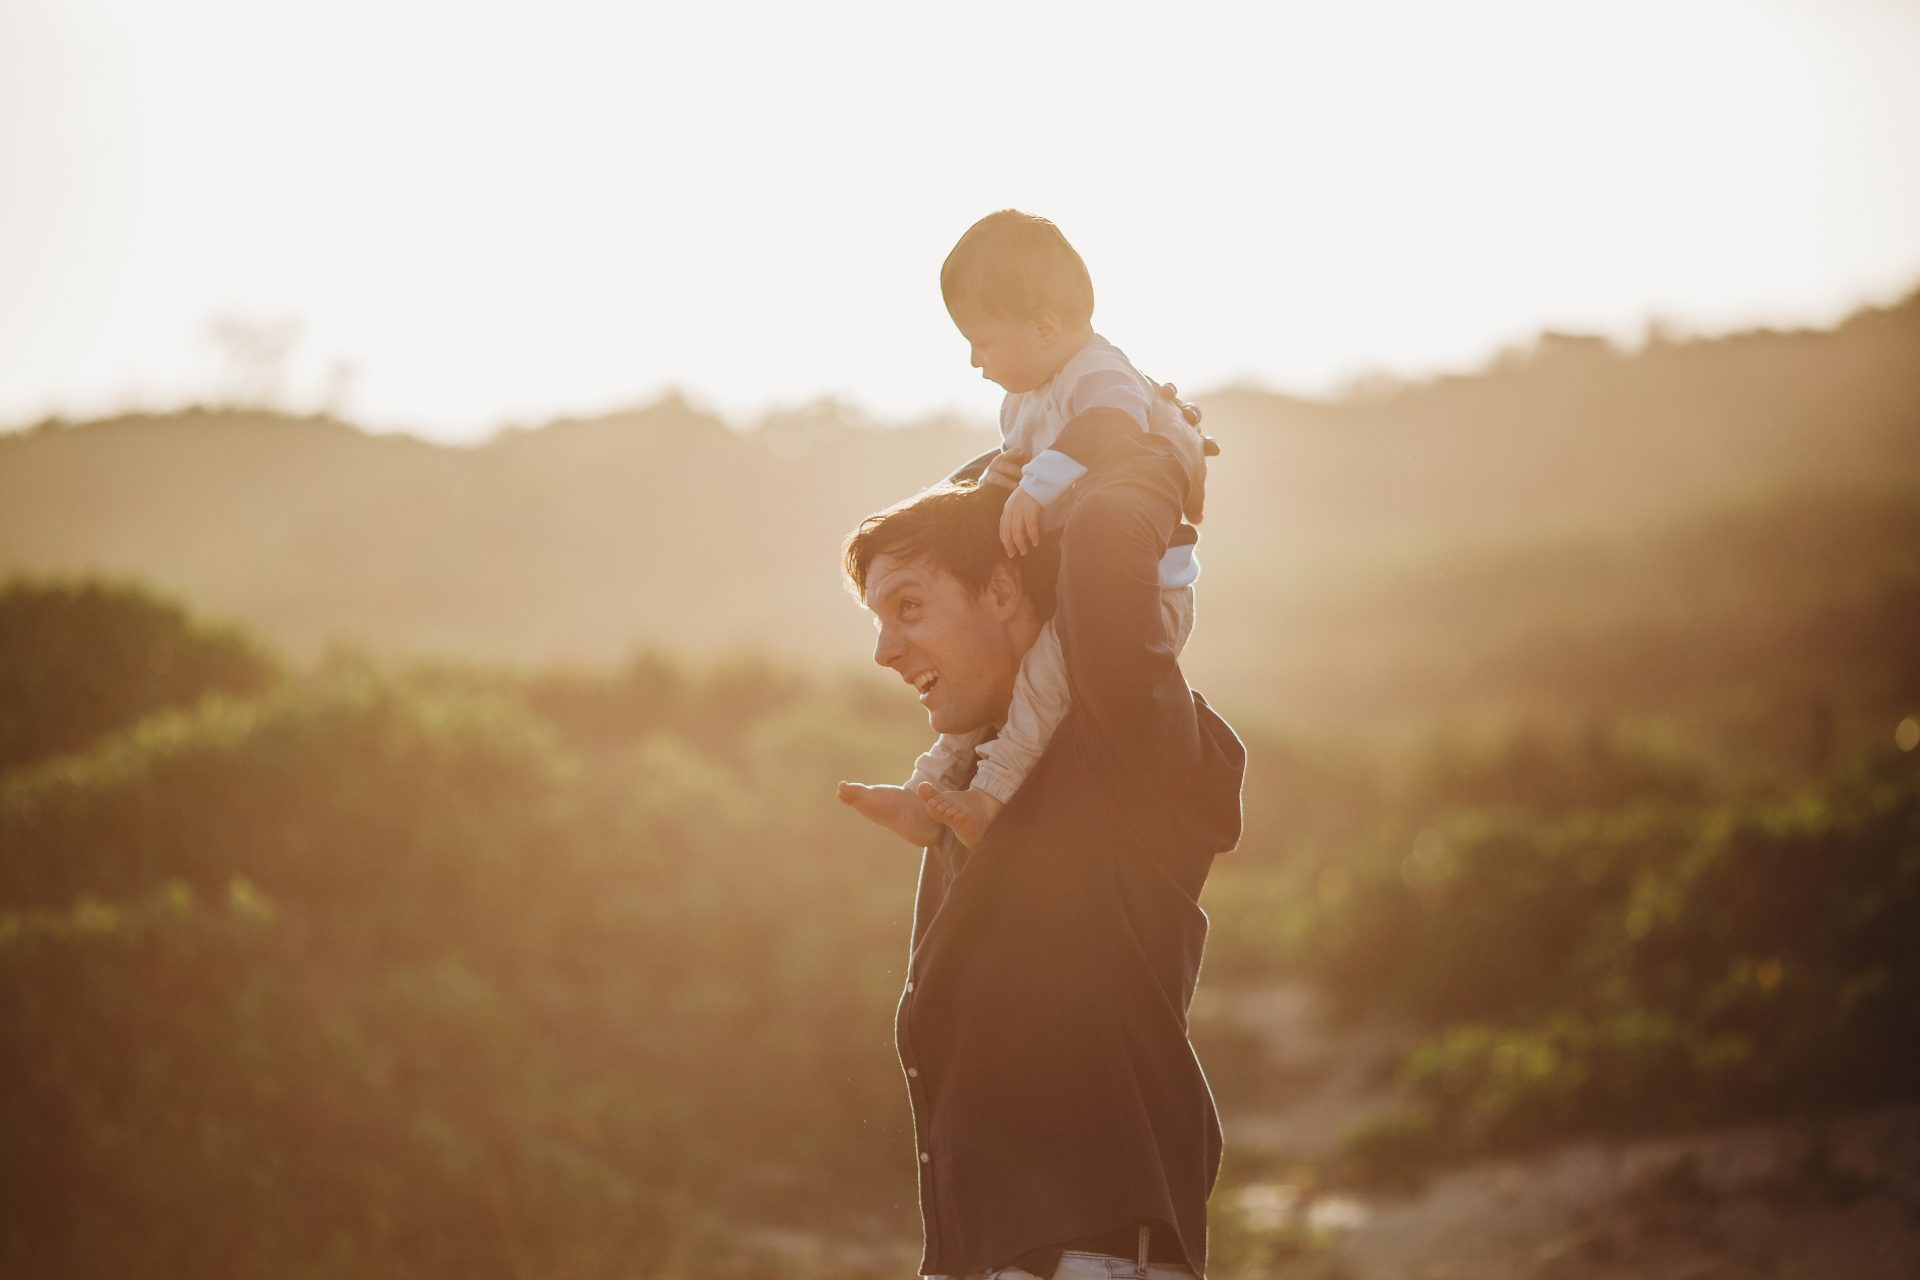 Toddler boy rides on his dad's shoulders at sunset on the beach